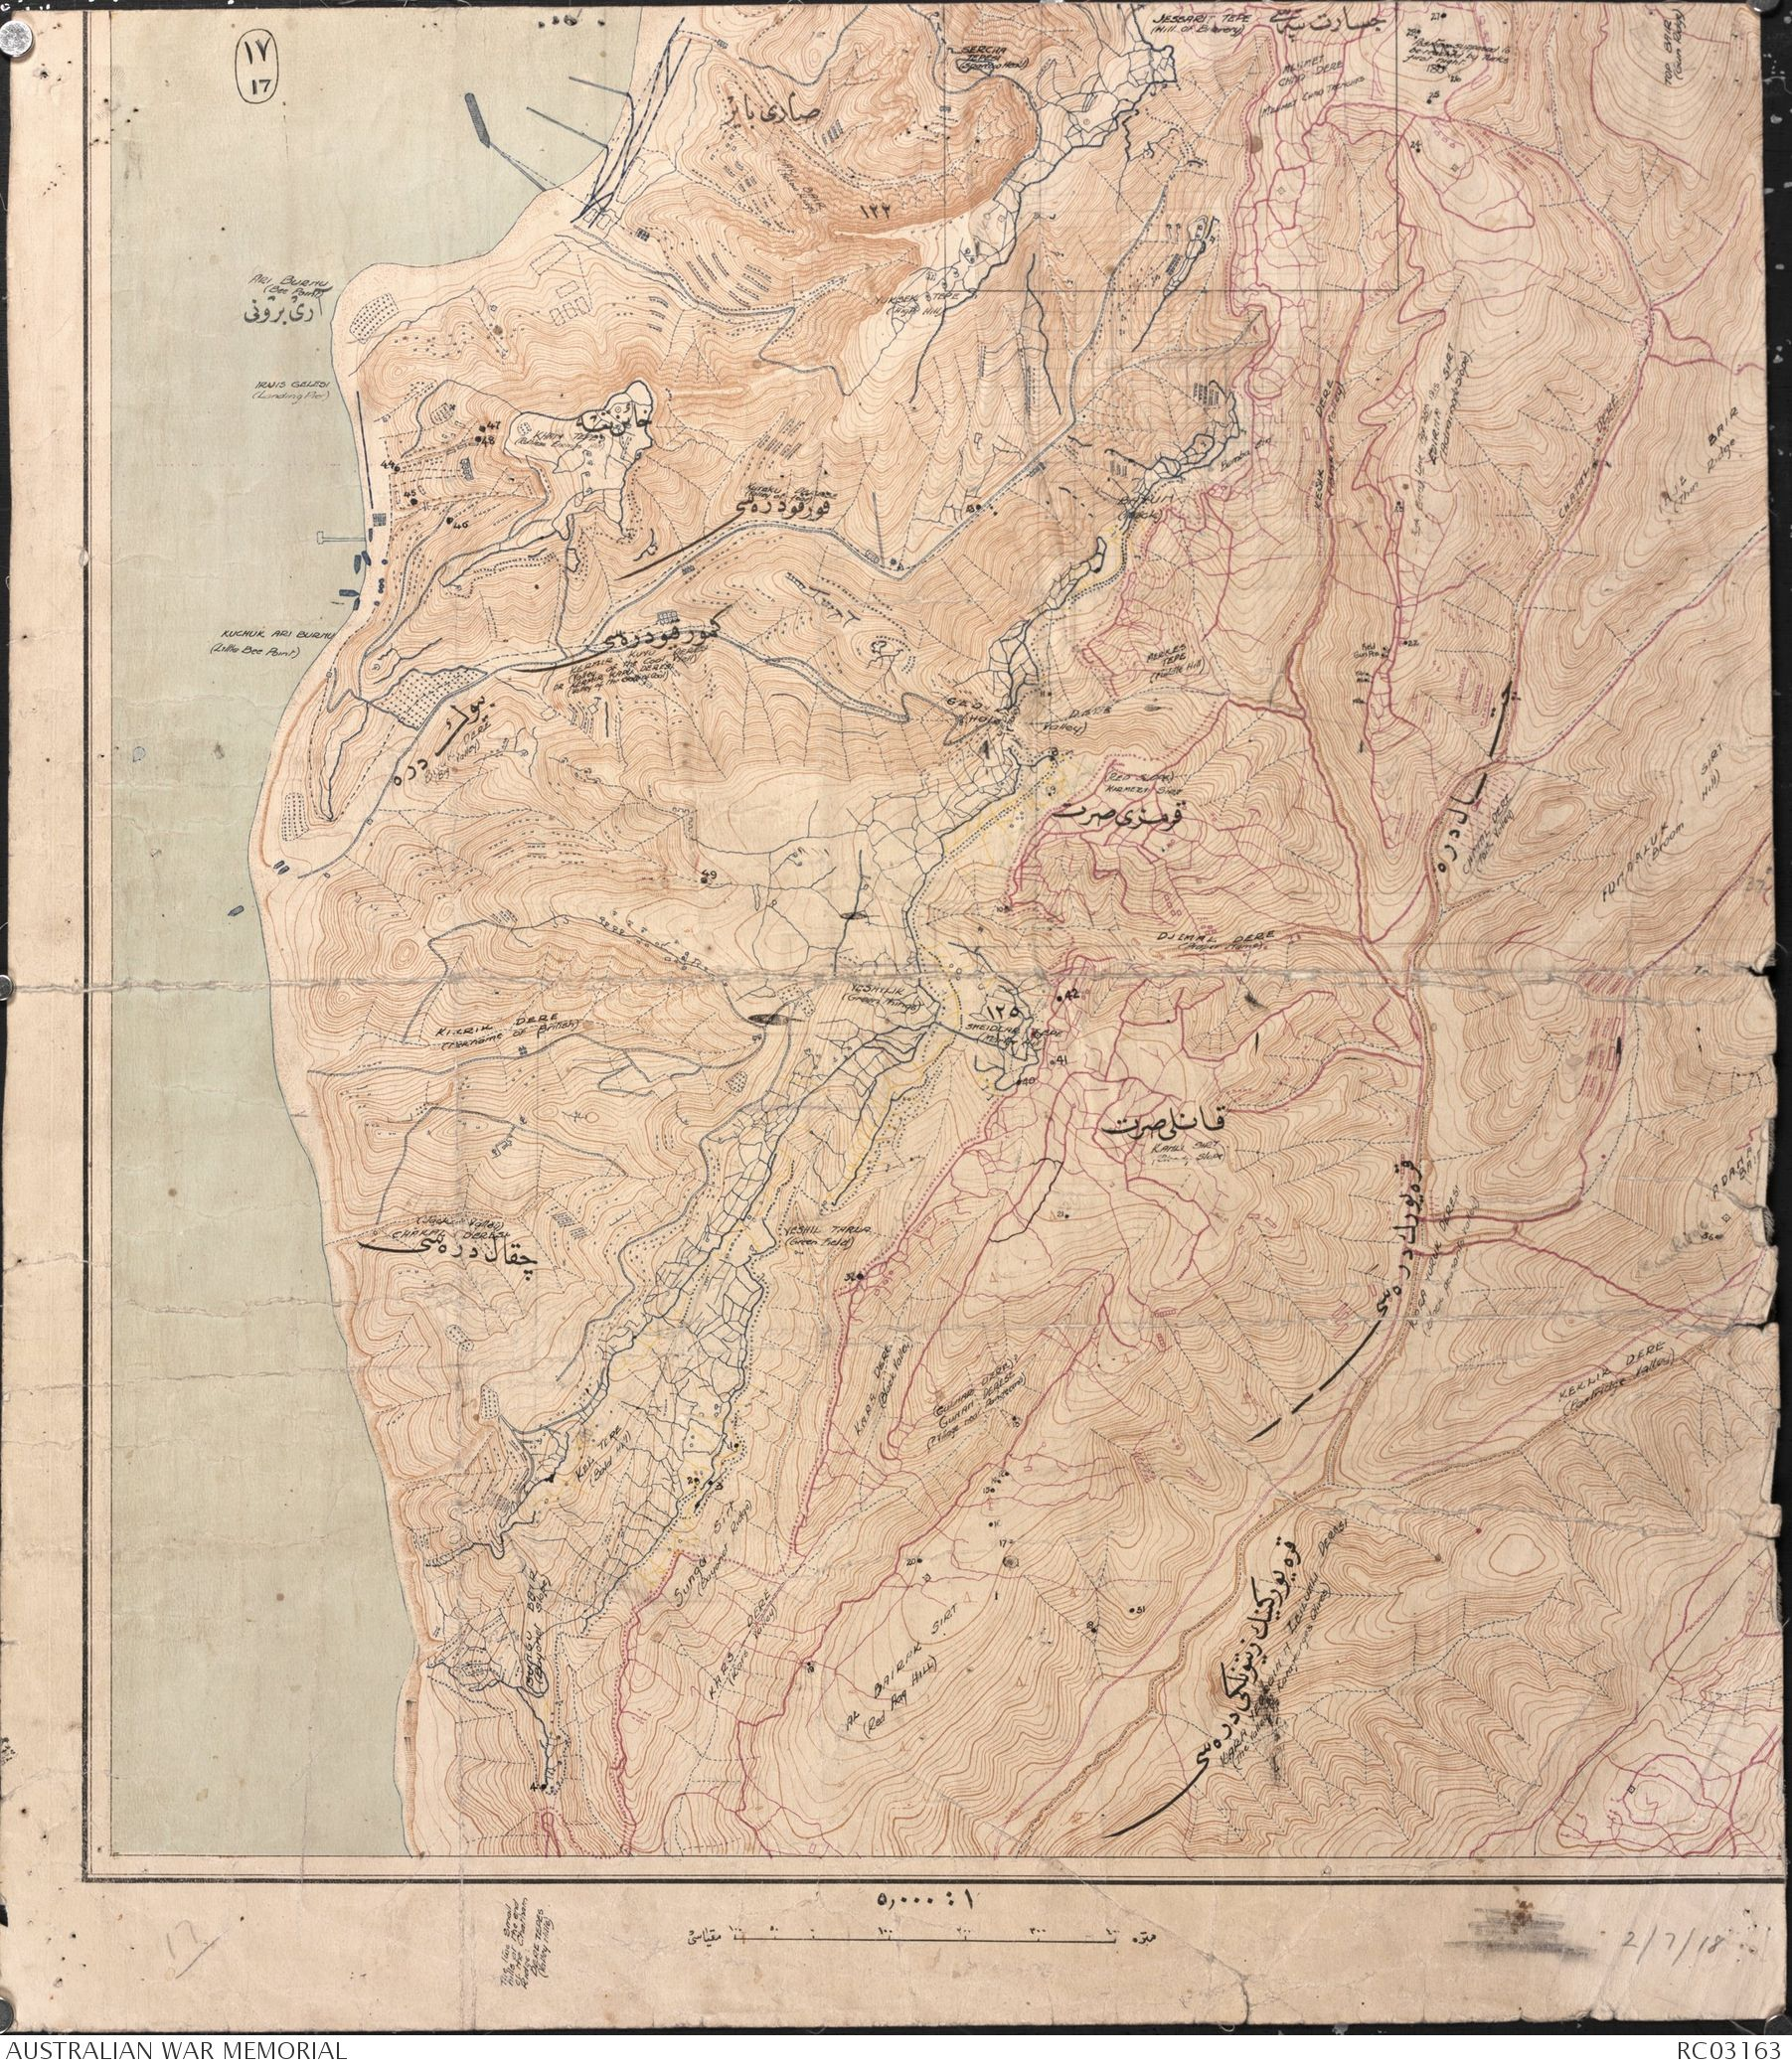 Turkish map 15000 anzac cove awm rc03163 gallipoli pinterest turkish map 15000 anzac cove awm rc03163 gumiabroncs Image collections